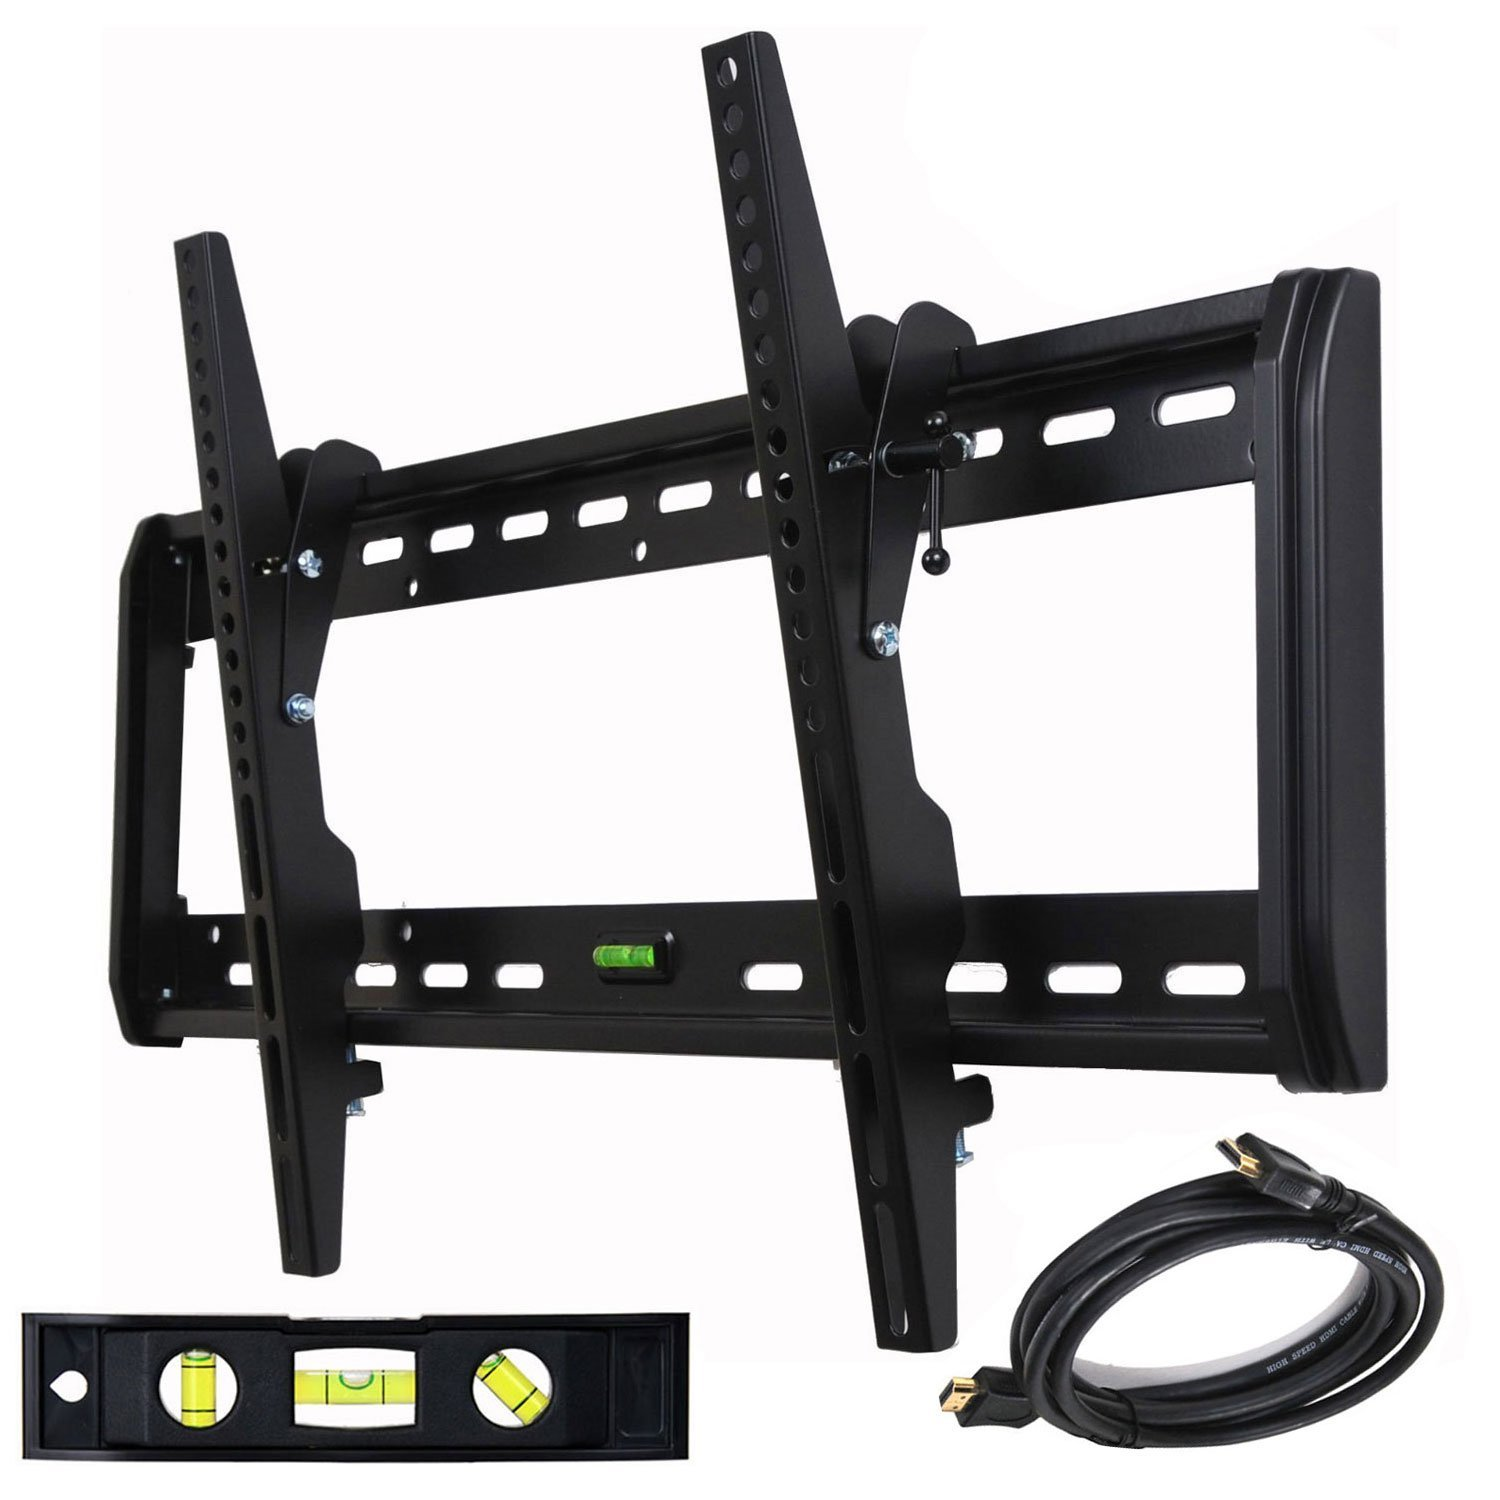 "VideoSecu Tilt TV Wall Mount for 32""-65"" LED LCD Plasma Flat Panel Screen Display Bracket Heavy Duty with HDMI Cable B54"